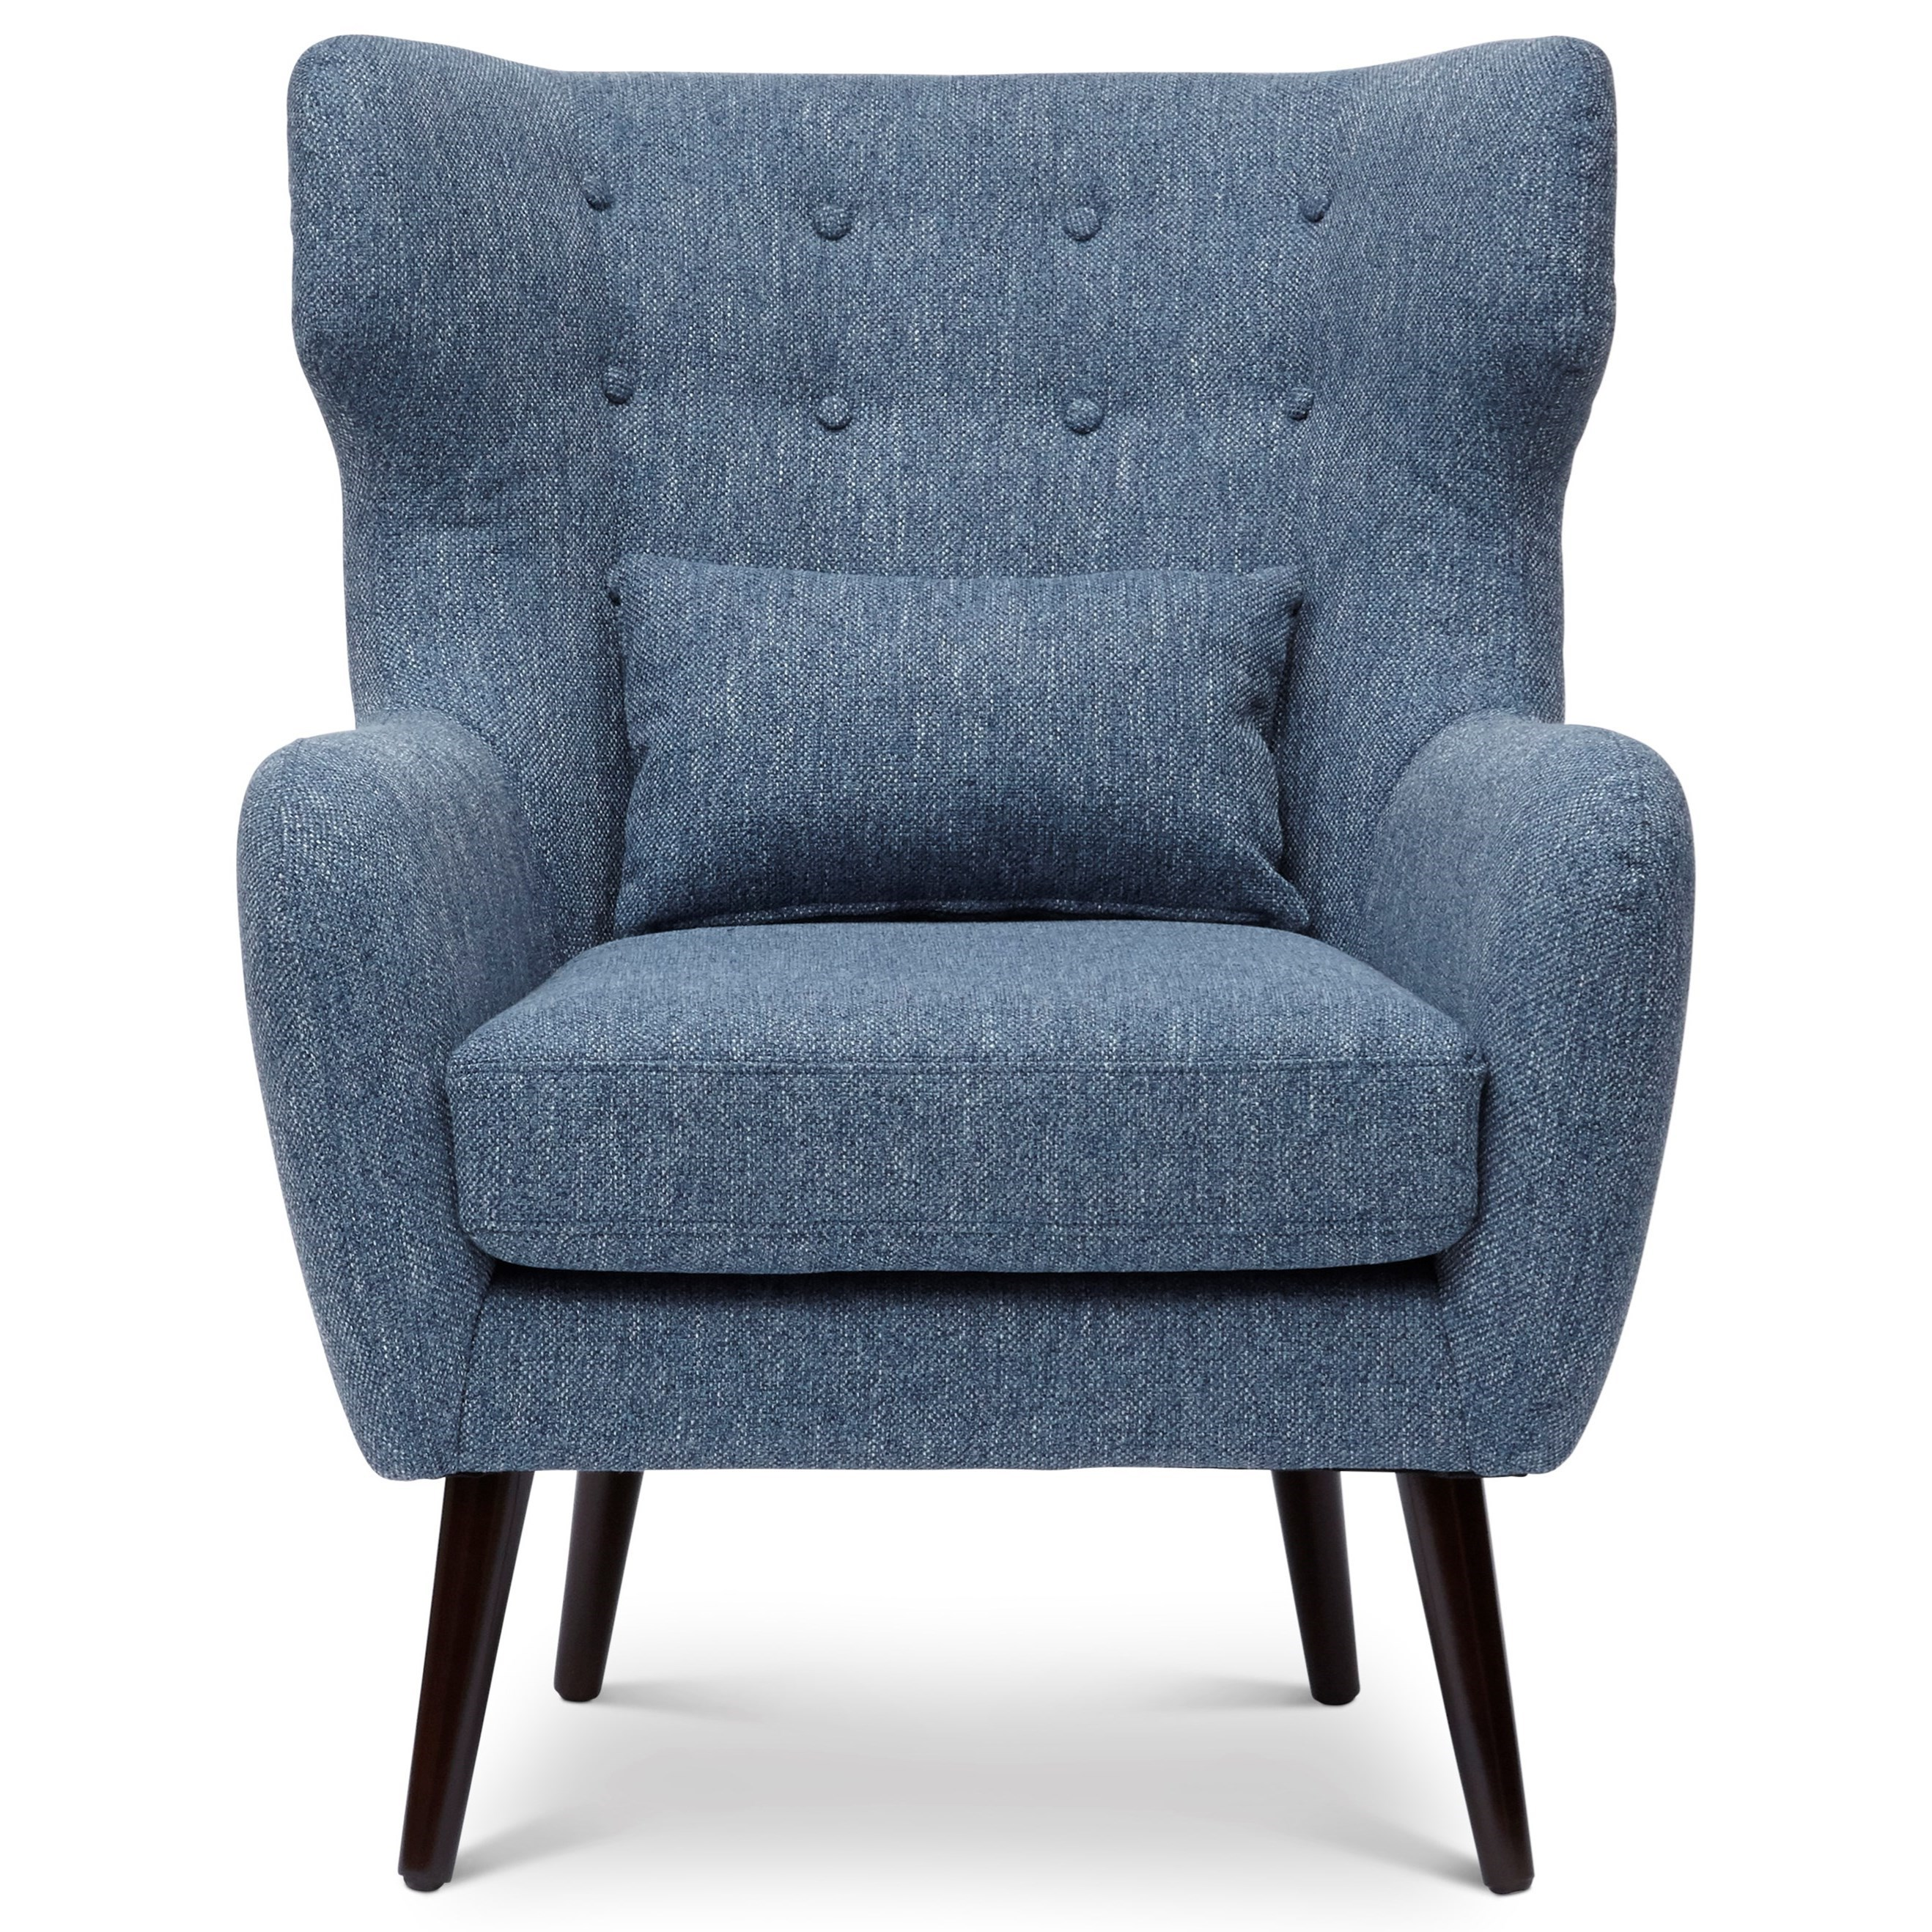 Jofran Accent Chairs Ava Mid Century Modern Accent Chair